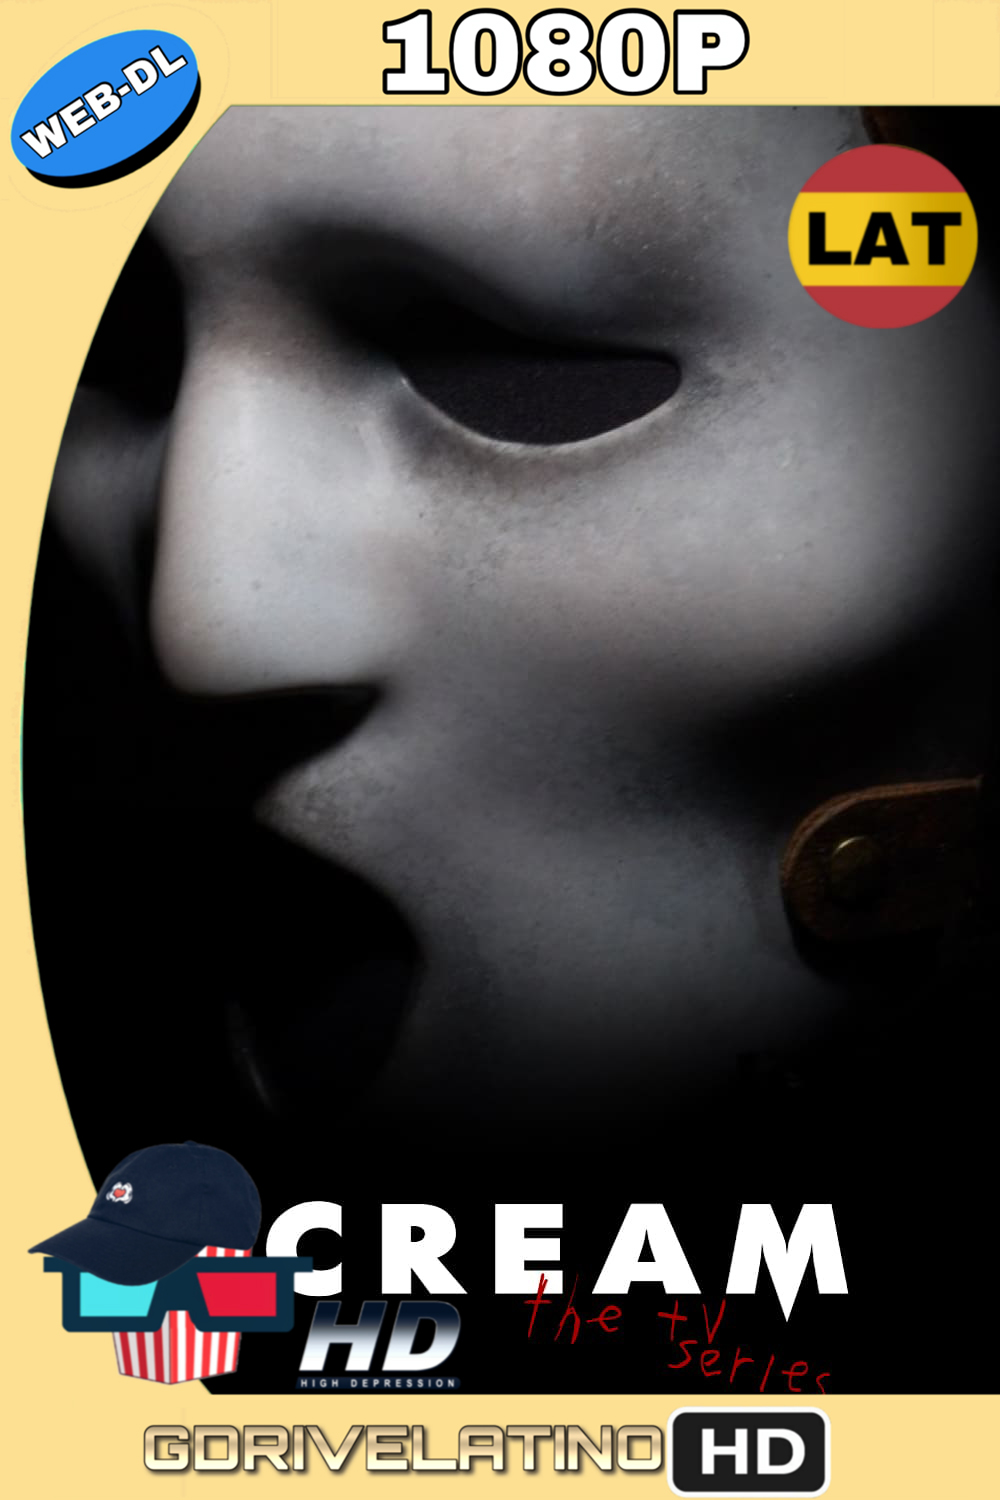 Scream (2015) Temporada 1 (10/10) WEB-DL 1080p (Latino-Inglés) MKV